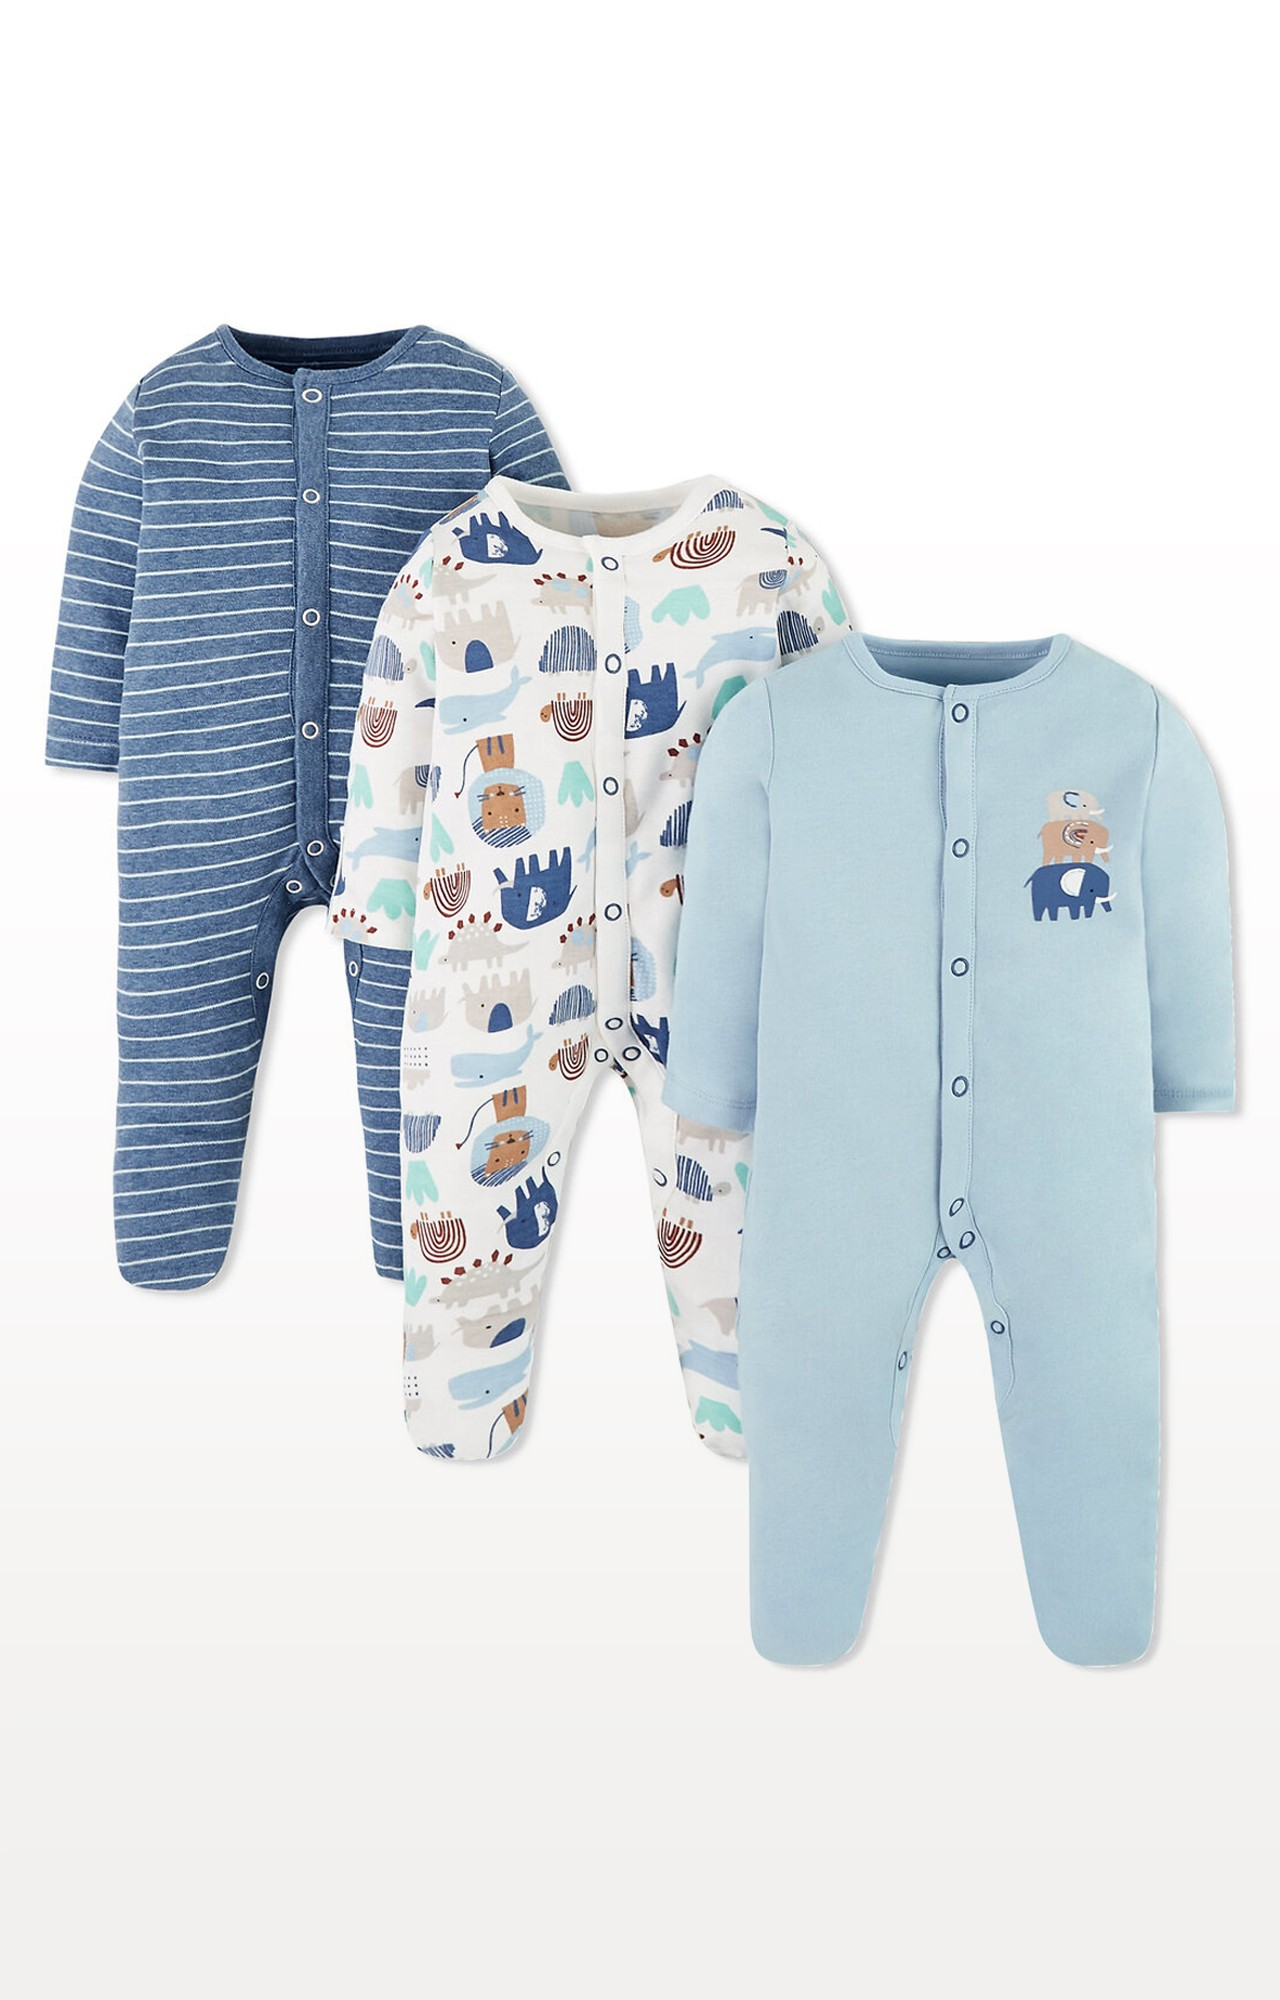 Mothercare   Blue Animal Friends Sleepsuits - Pack of 3